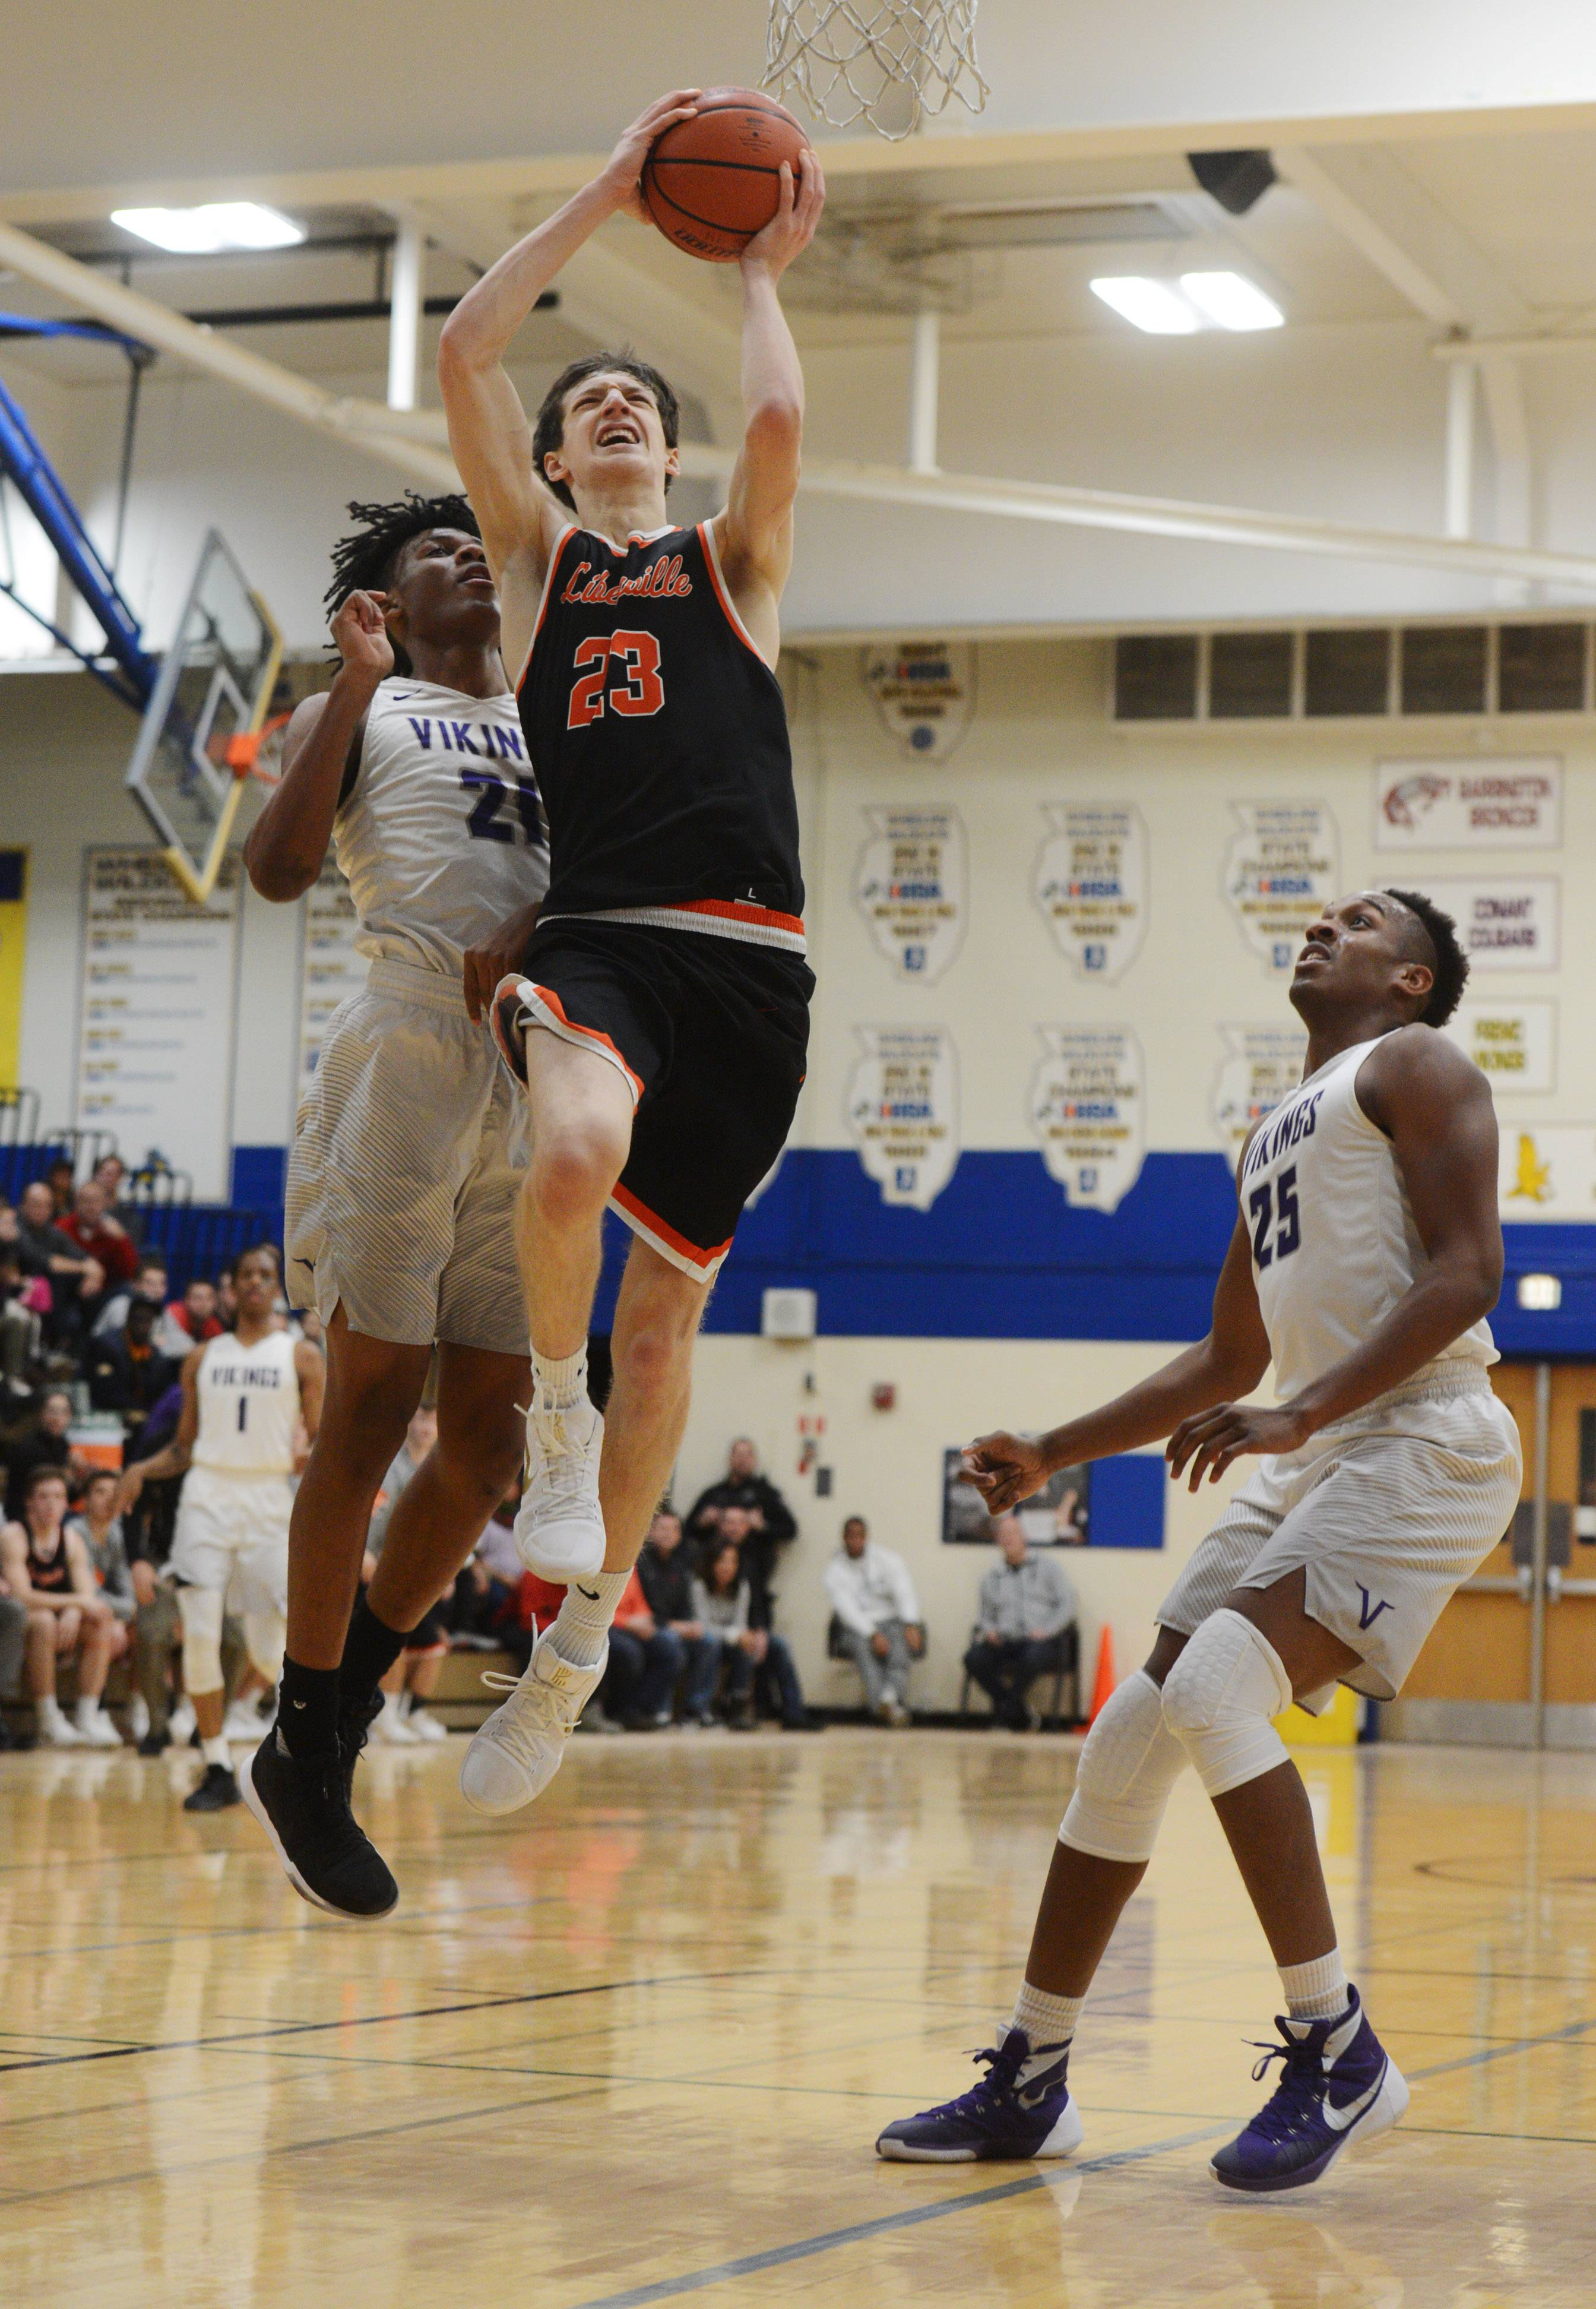 Libertyville's Drew Peterson shoots against the defense of Niles North's Jailen Butler, left, and Lamar Nicholson Jr. during the championship game of the Wheeling Hardwood Classic on Saturday.